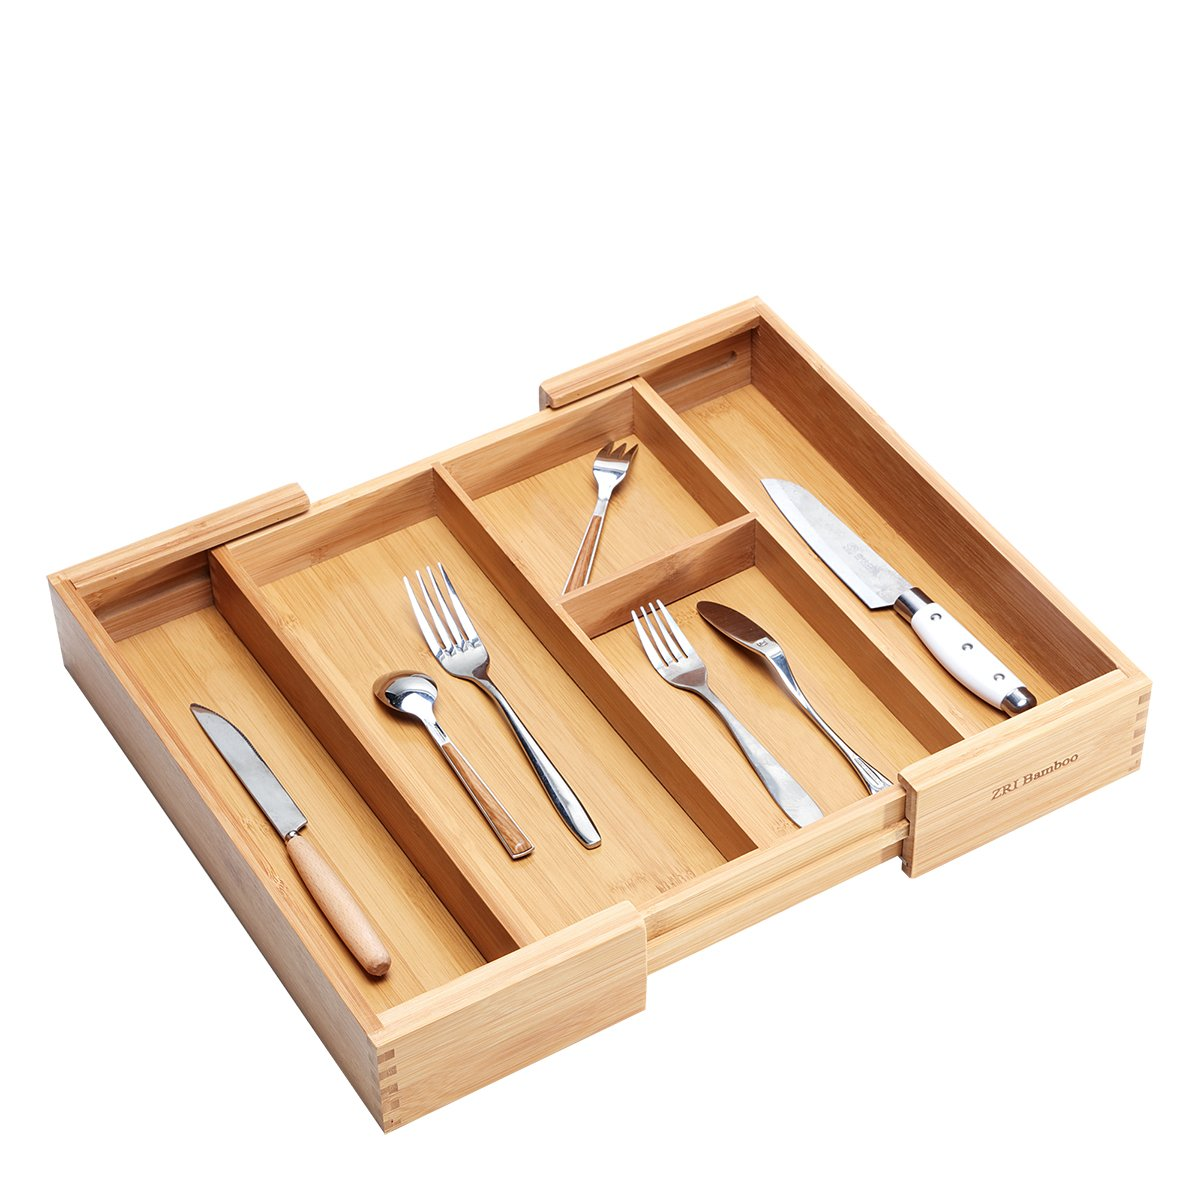 Bamboo Expandable Silverware Drawer Organizer - Kitchen Cutlery Utensil Flatware Tray Mortise and Tenon Connection